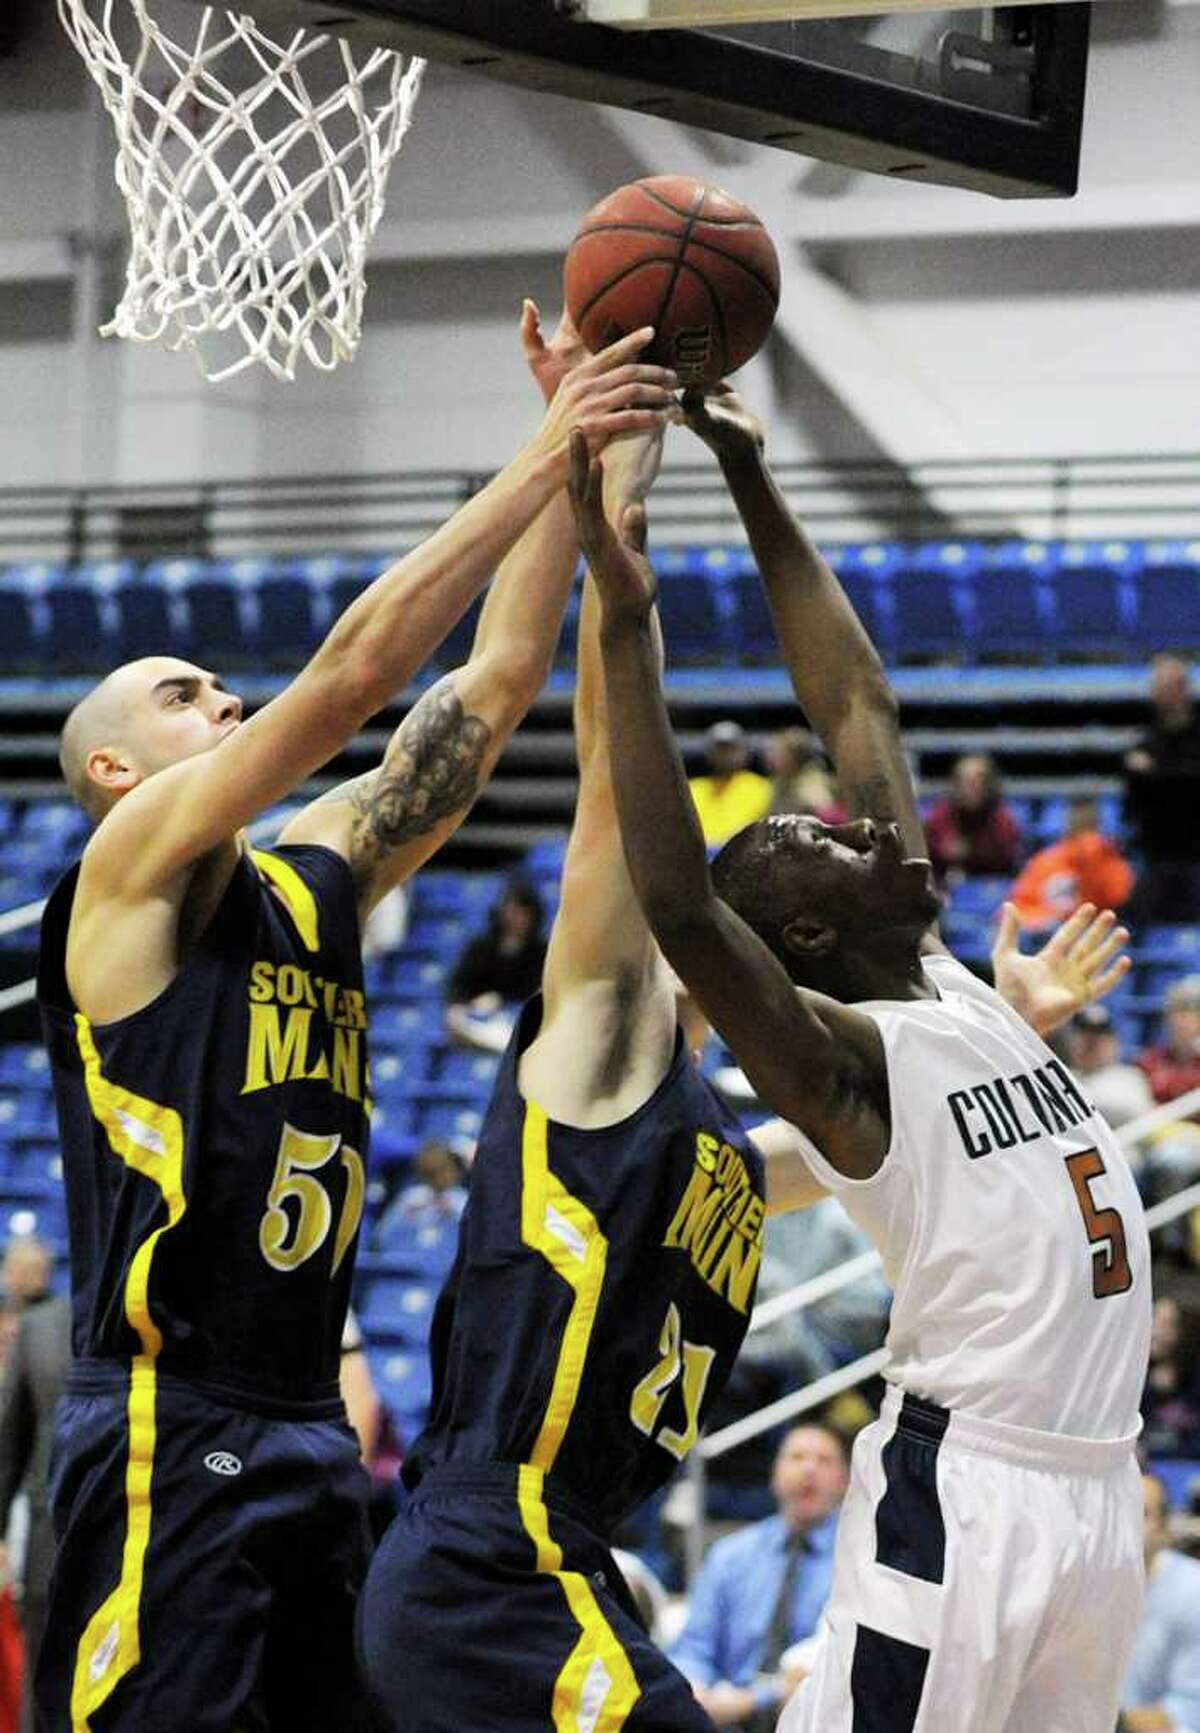 University of Southern Maine's John Roberts, left, and Alex Kee compete with Western Connecticut State University's Ter'Quwan Perkins for the rebound during their game at the O'Neill Center on WestConn's Westside campus on Saturday, Dec. 10, 2011. WestConn won 88-58.